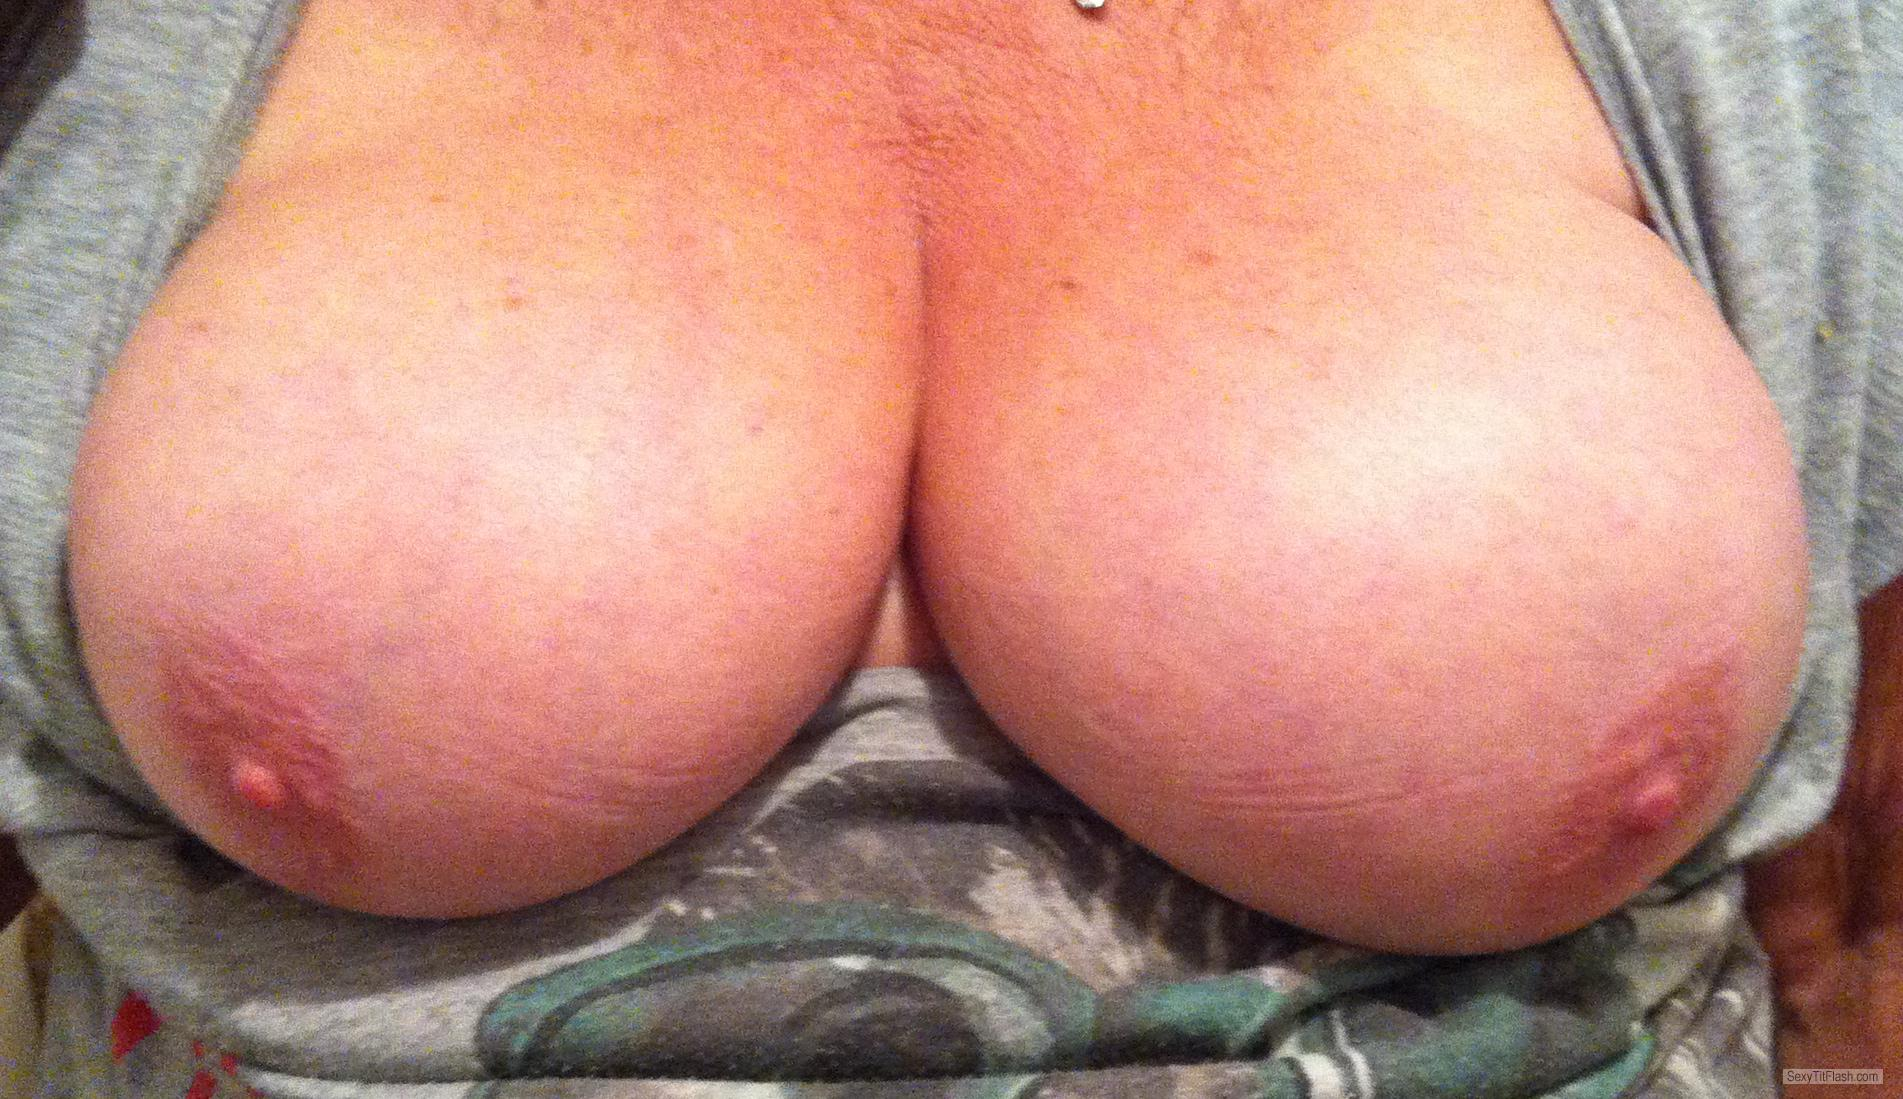 Big Tits Of A Friend Sexy M